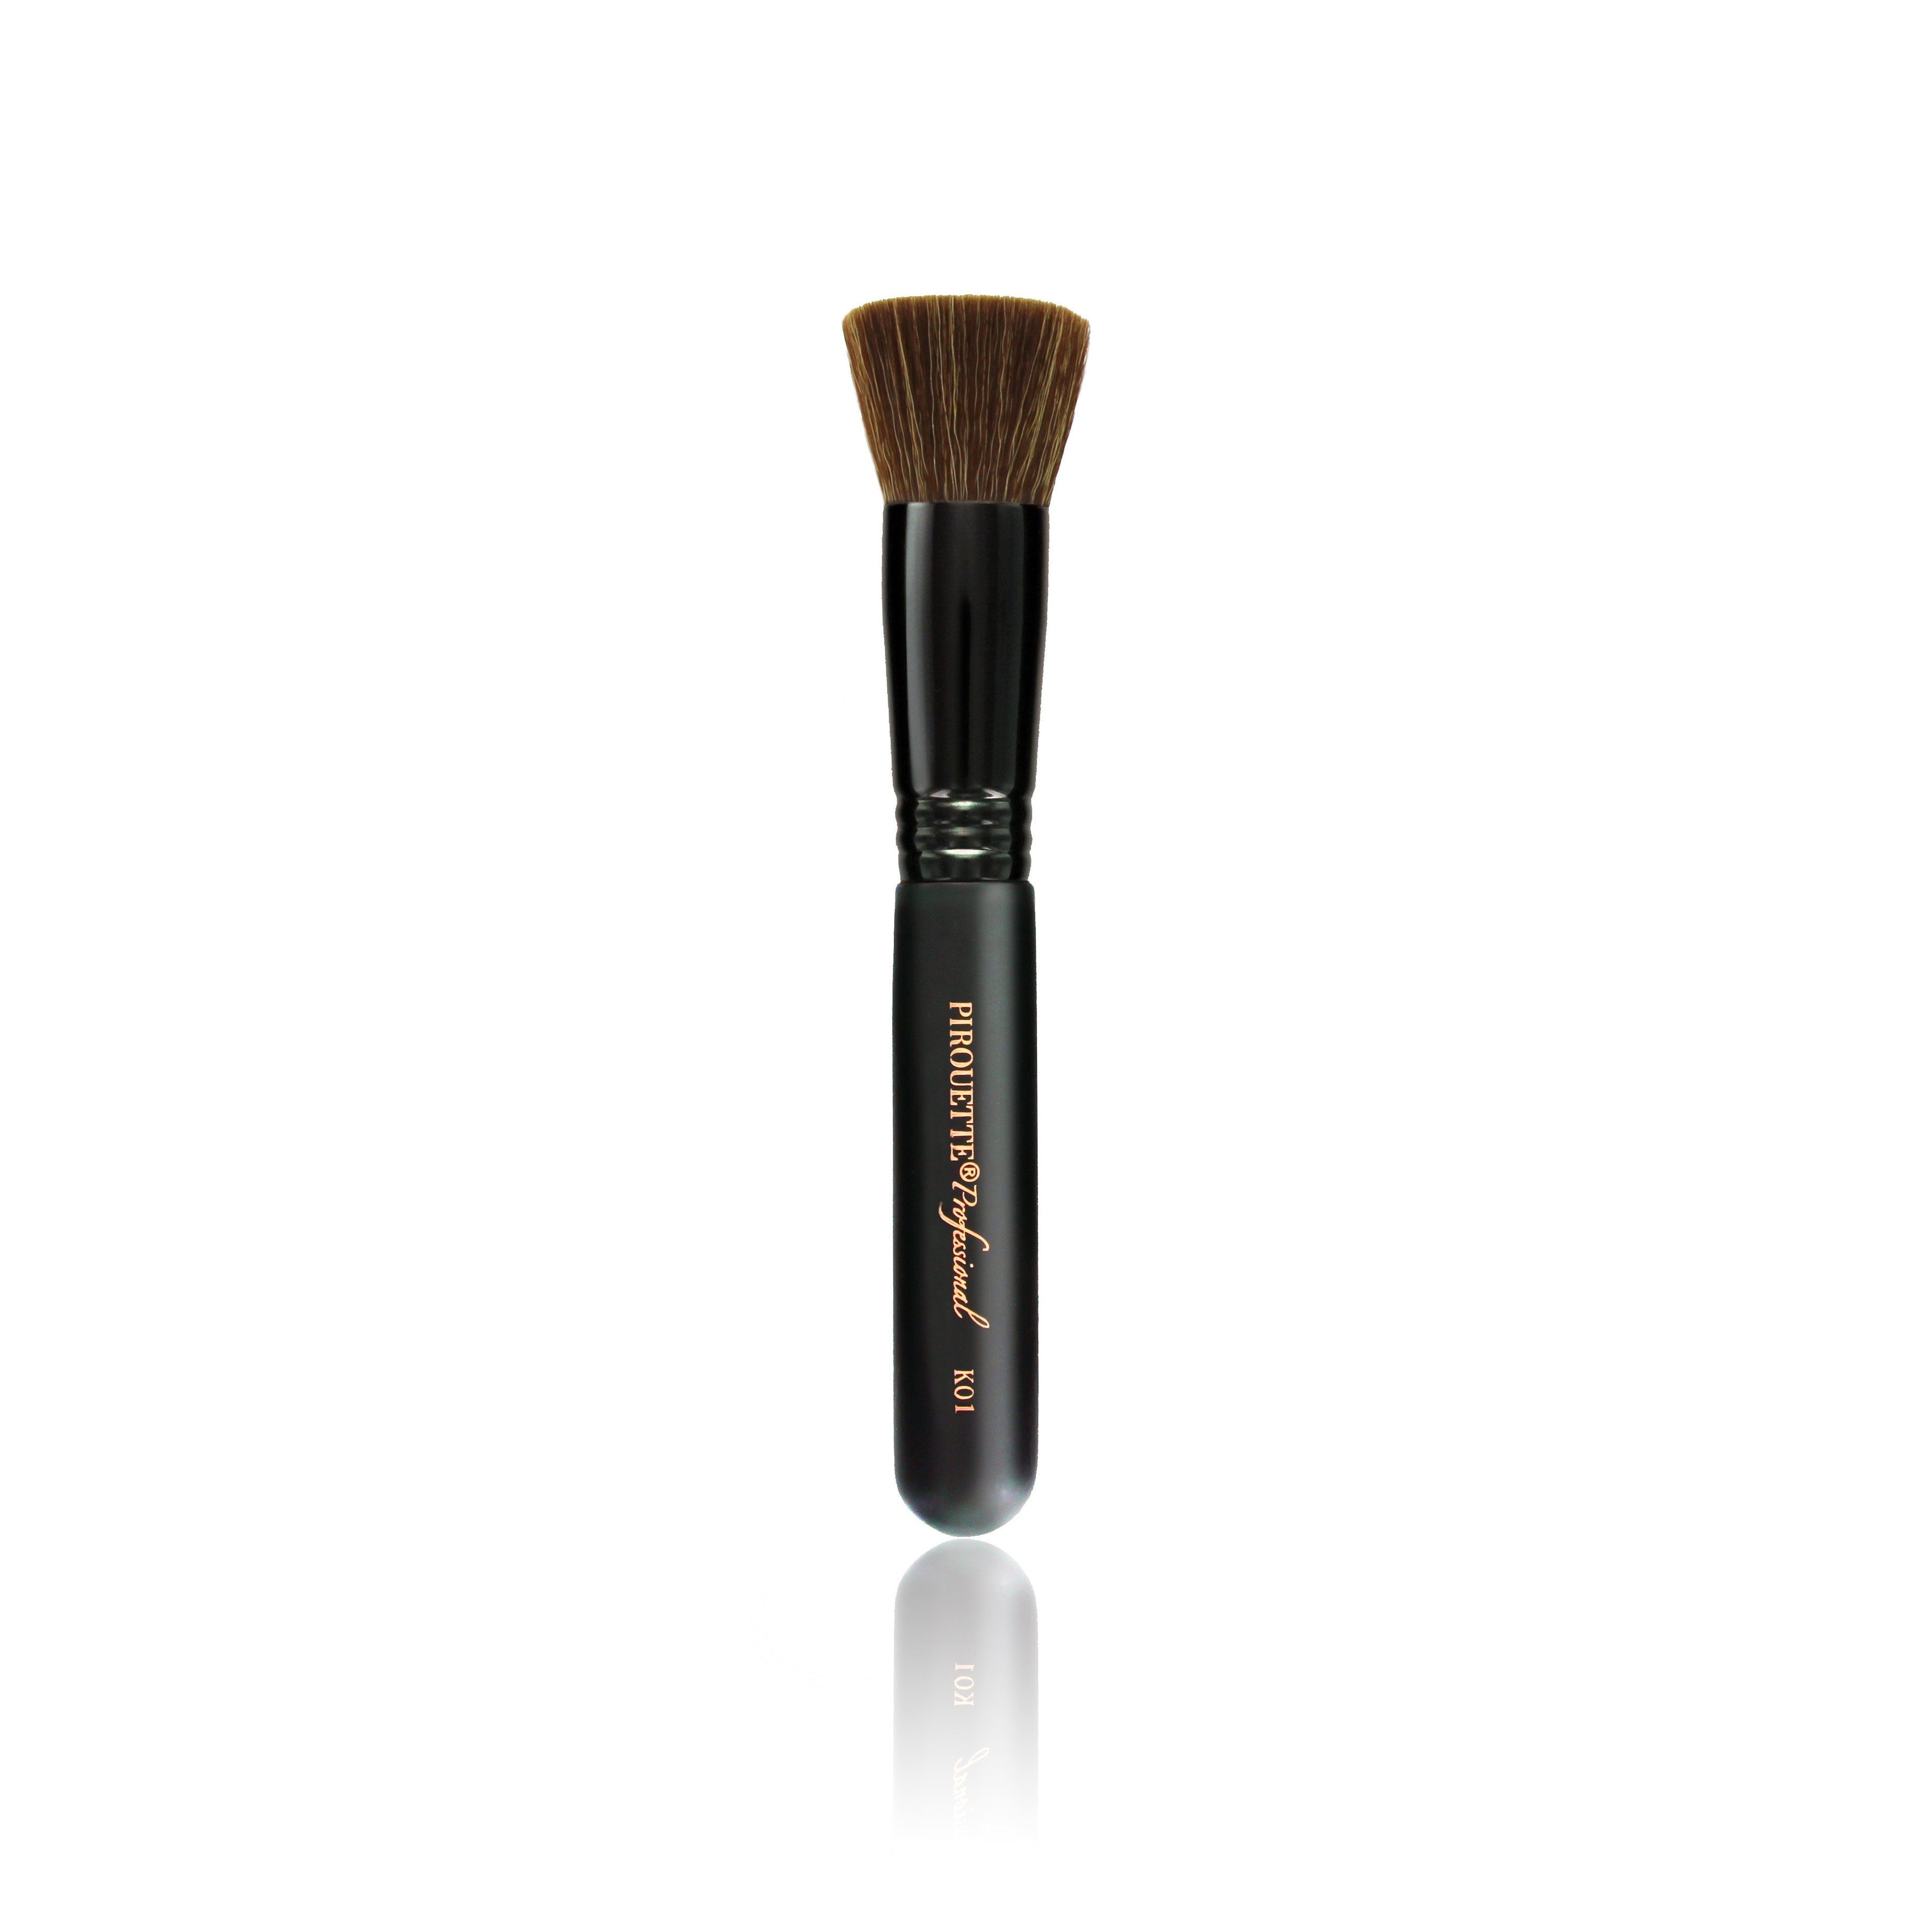 What are Kabuki brushes and how to use them? How do you